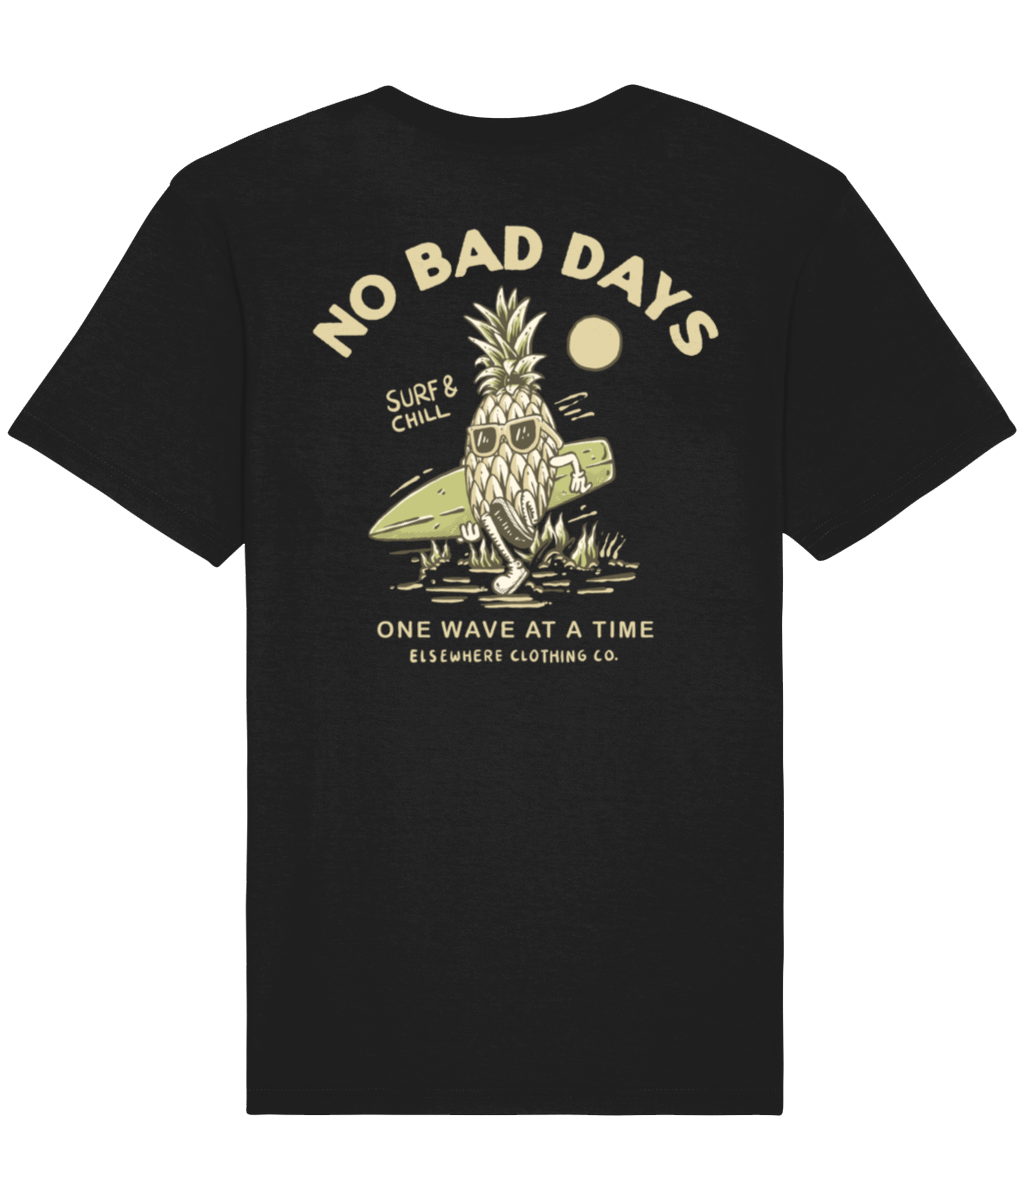 No Bad Days Tee - Elsewhere Clothing Co.